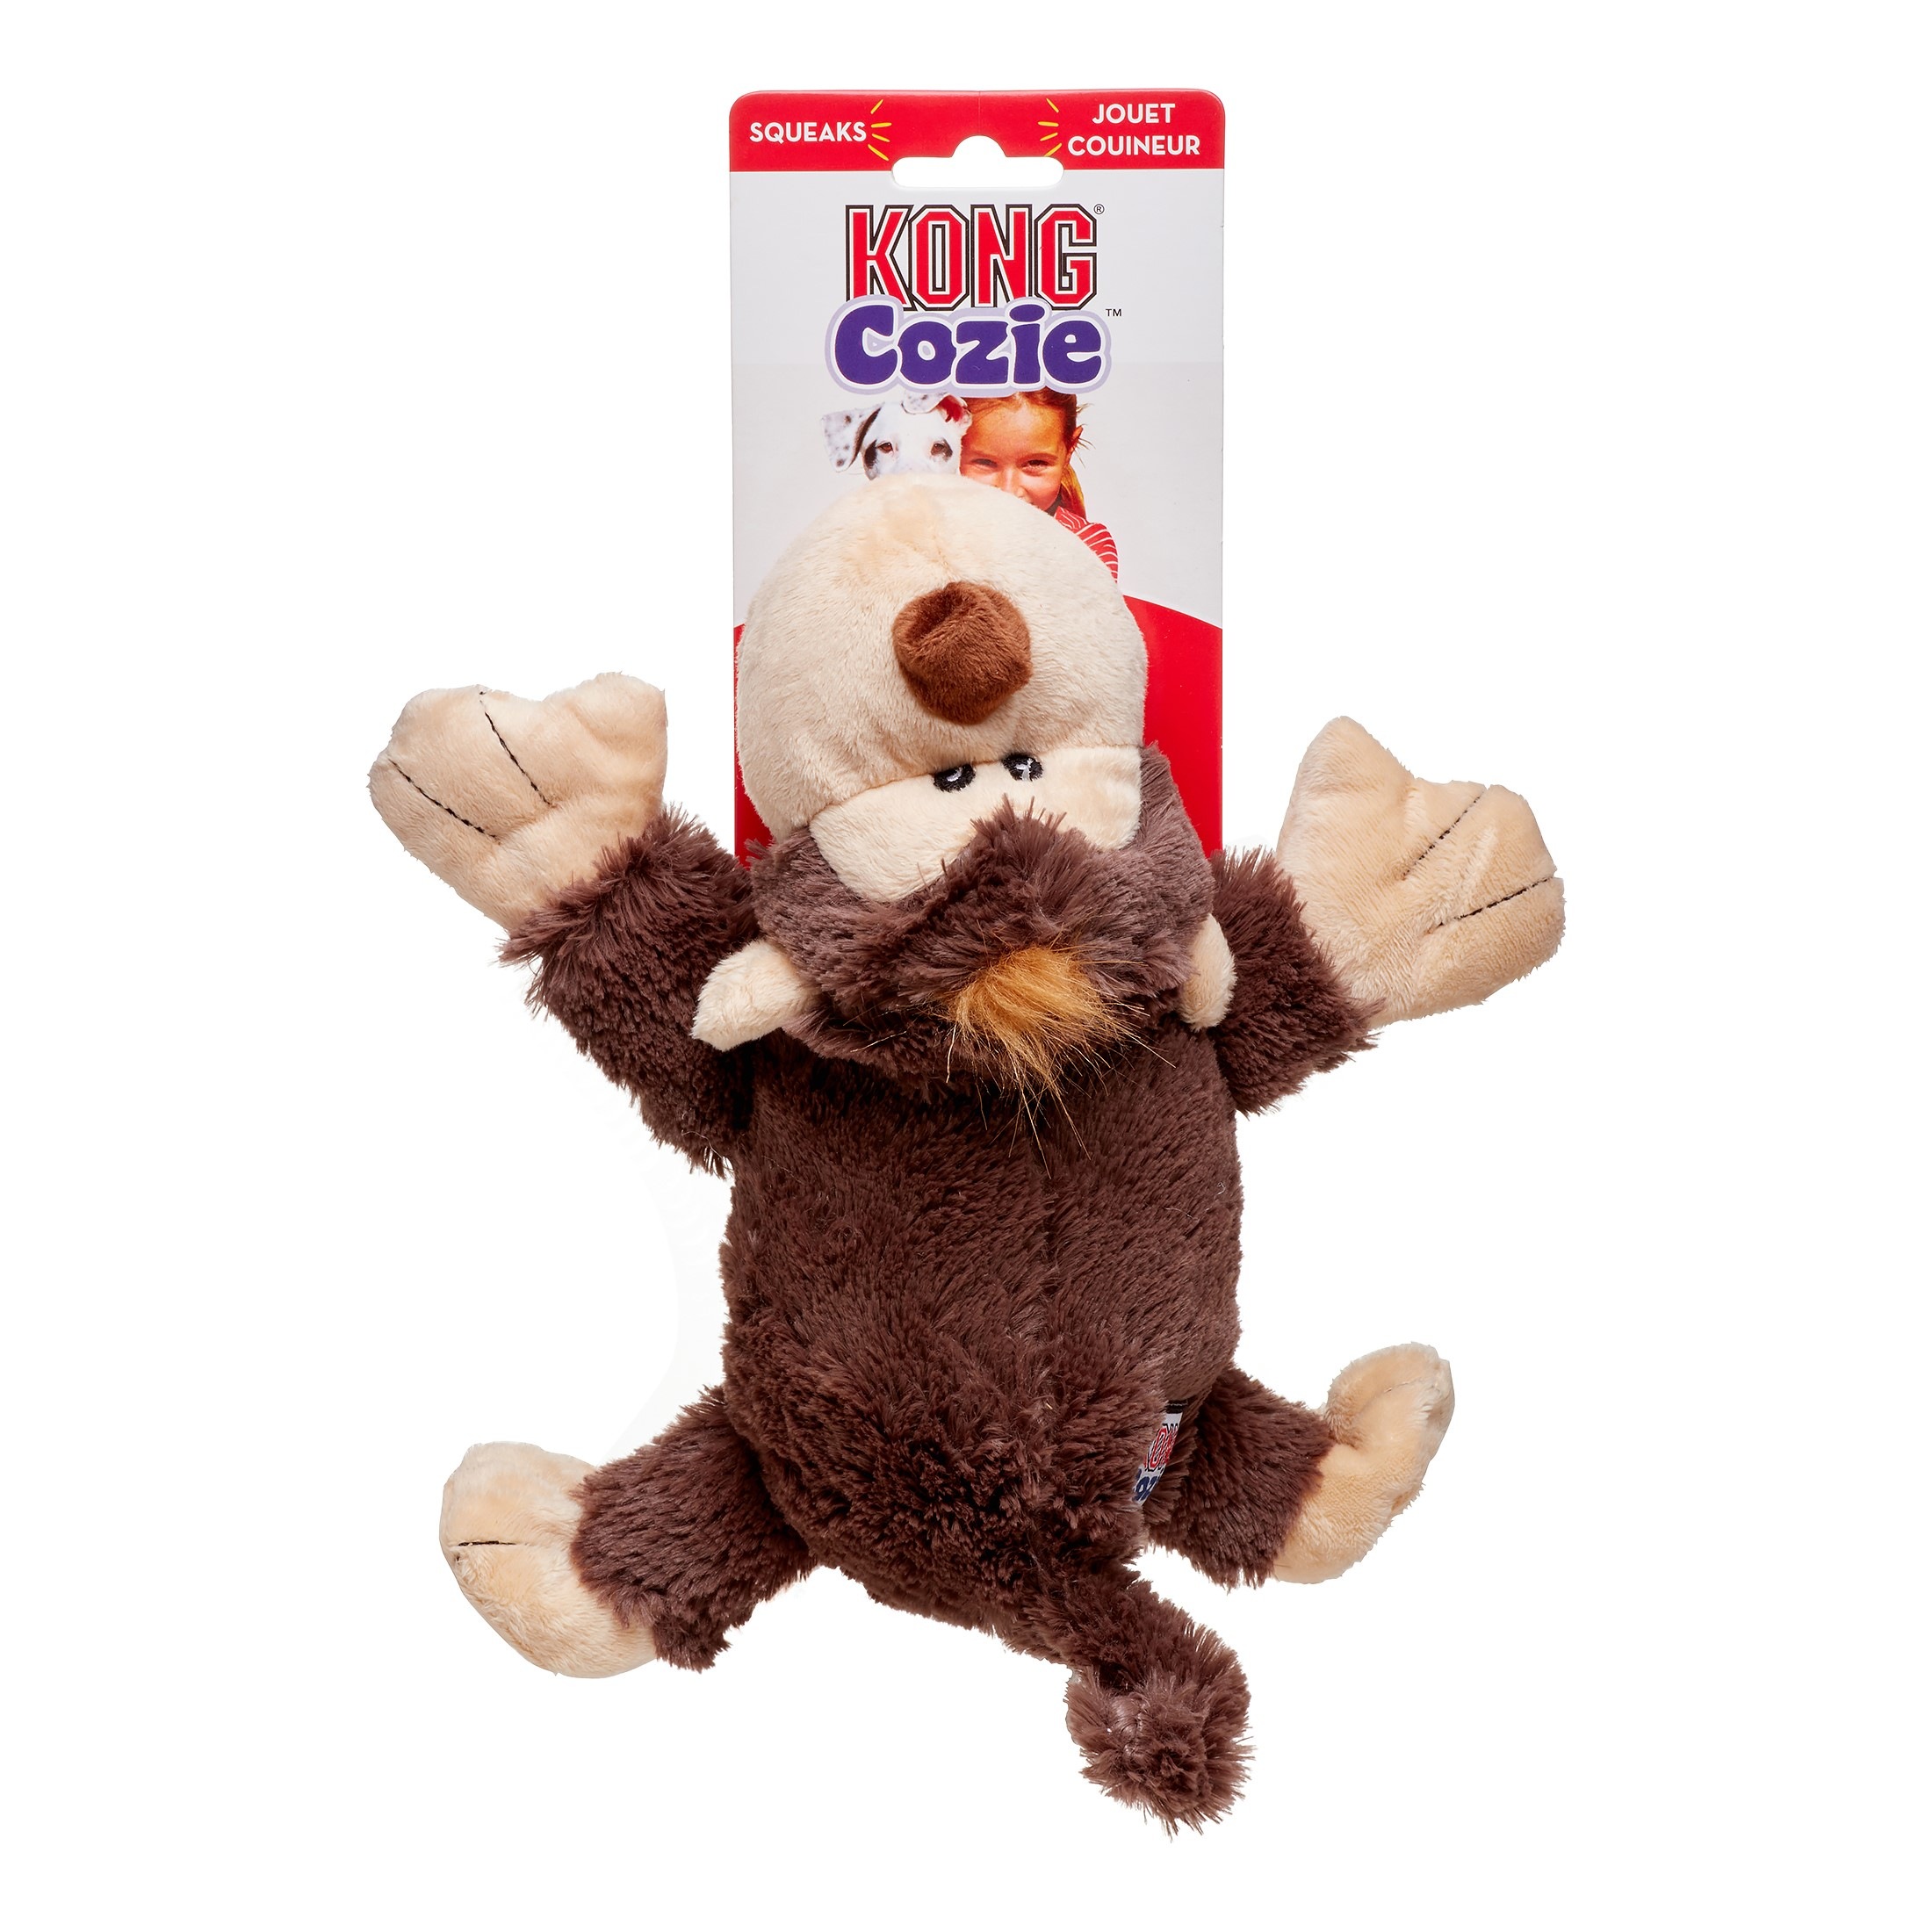 KONG Cozie Spunky the Monkey Dog Toy, Small